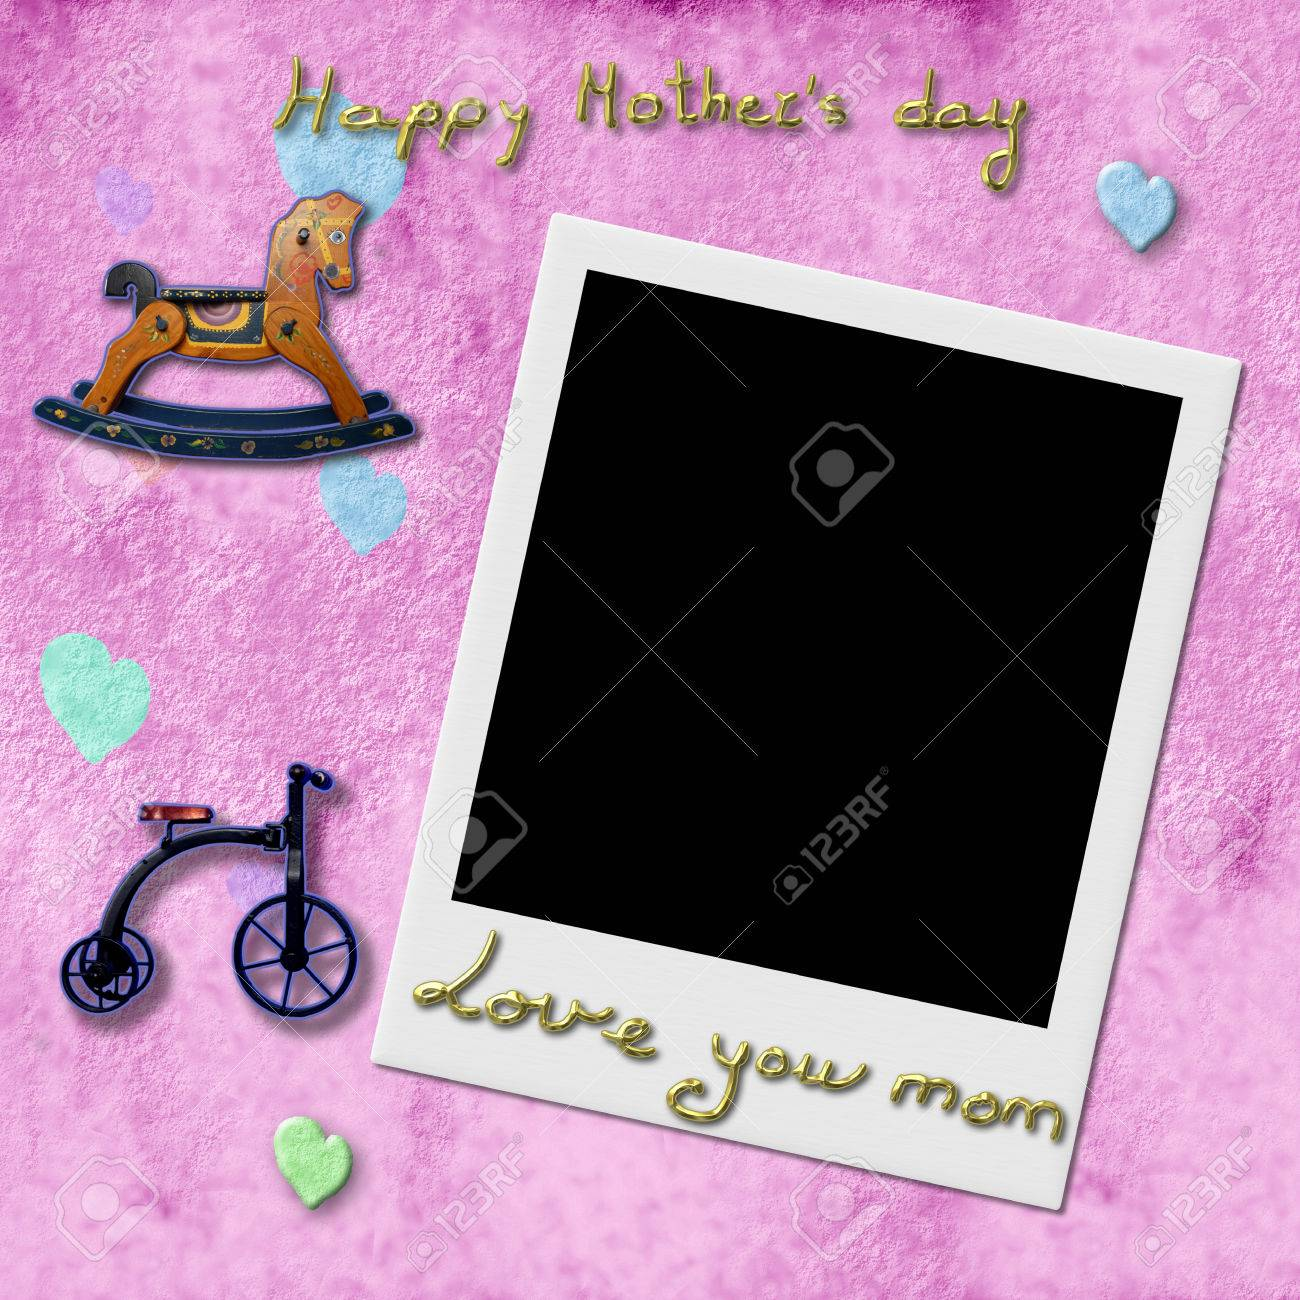 Happy Mothers Day Love You Mom Instant Photo Frame In Pink Stock